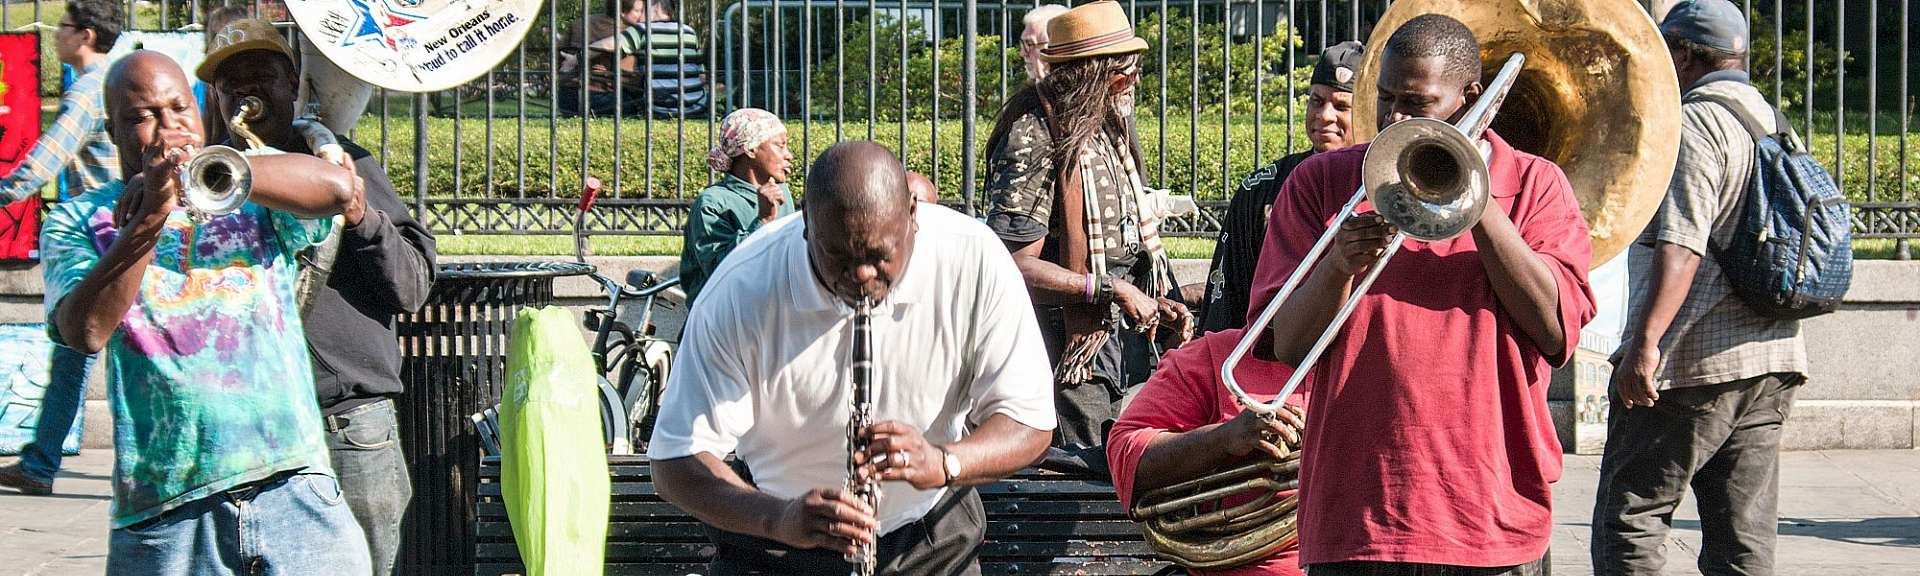 Jazz in New Orleans